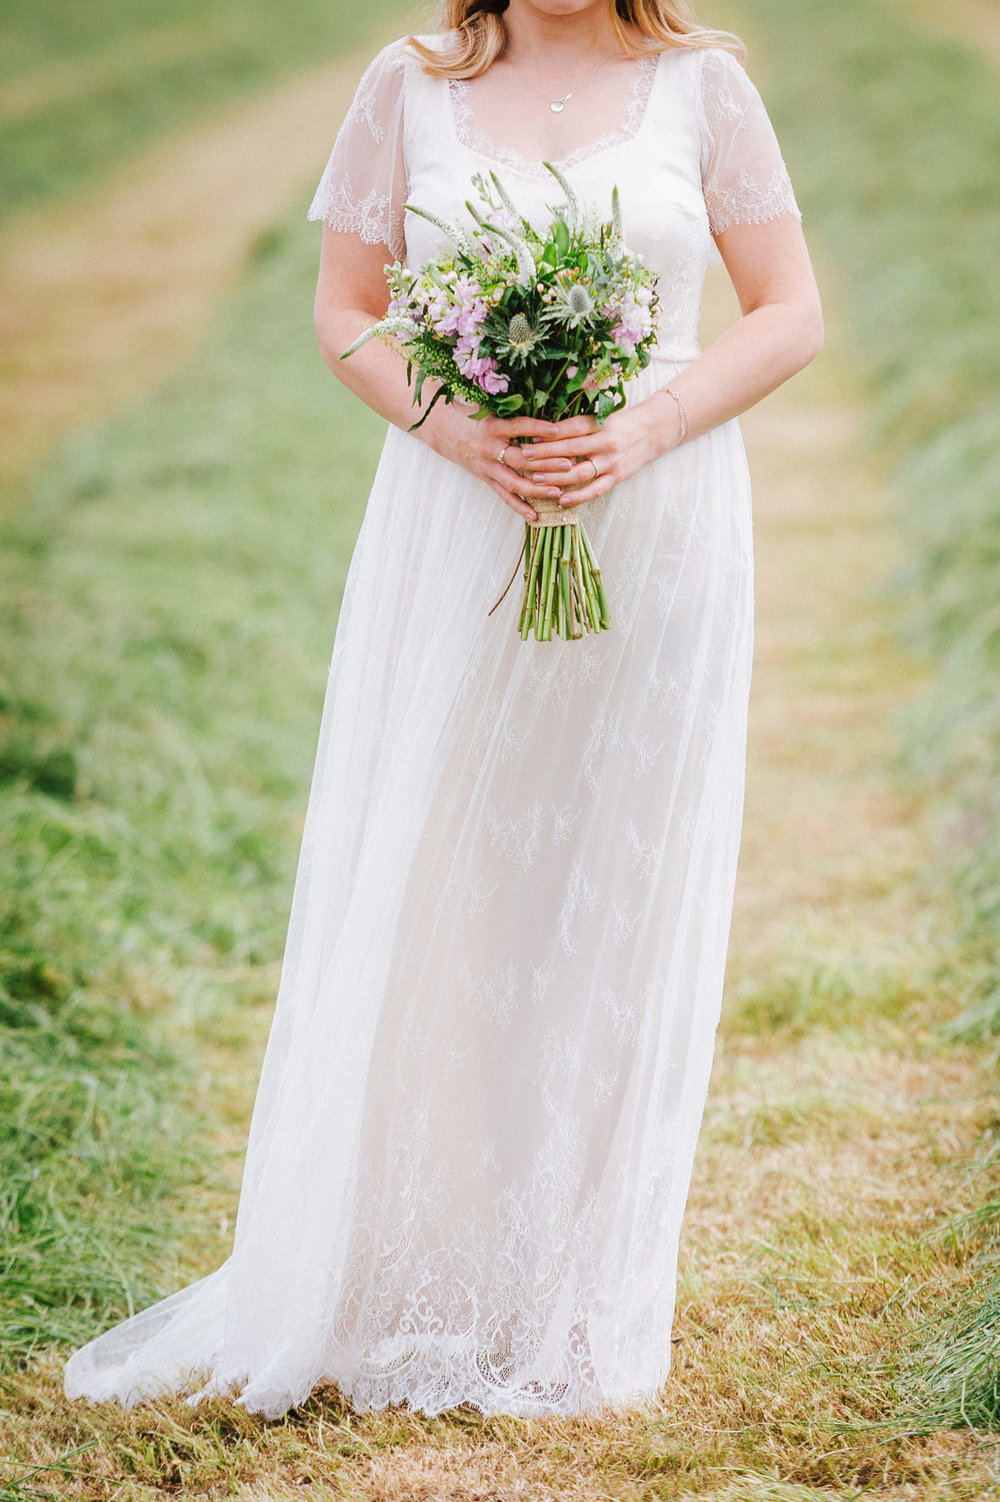 Lace-Wedding-Gown-Rustic-Barn-Wedding-Yorkshire-Kate-Beaumont-24.jpg